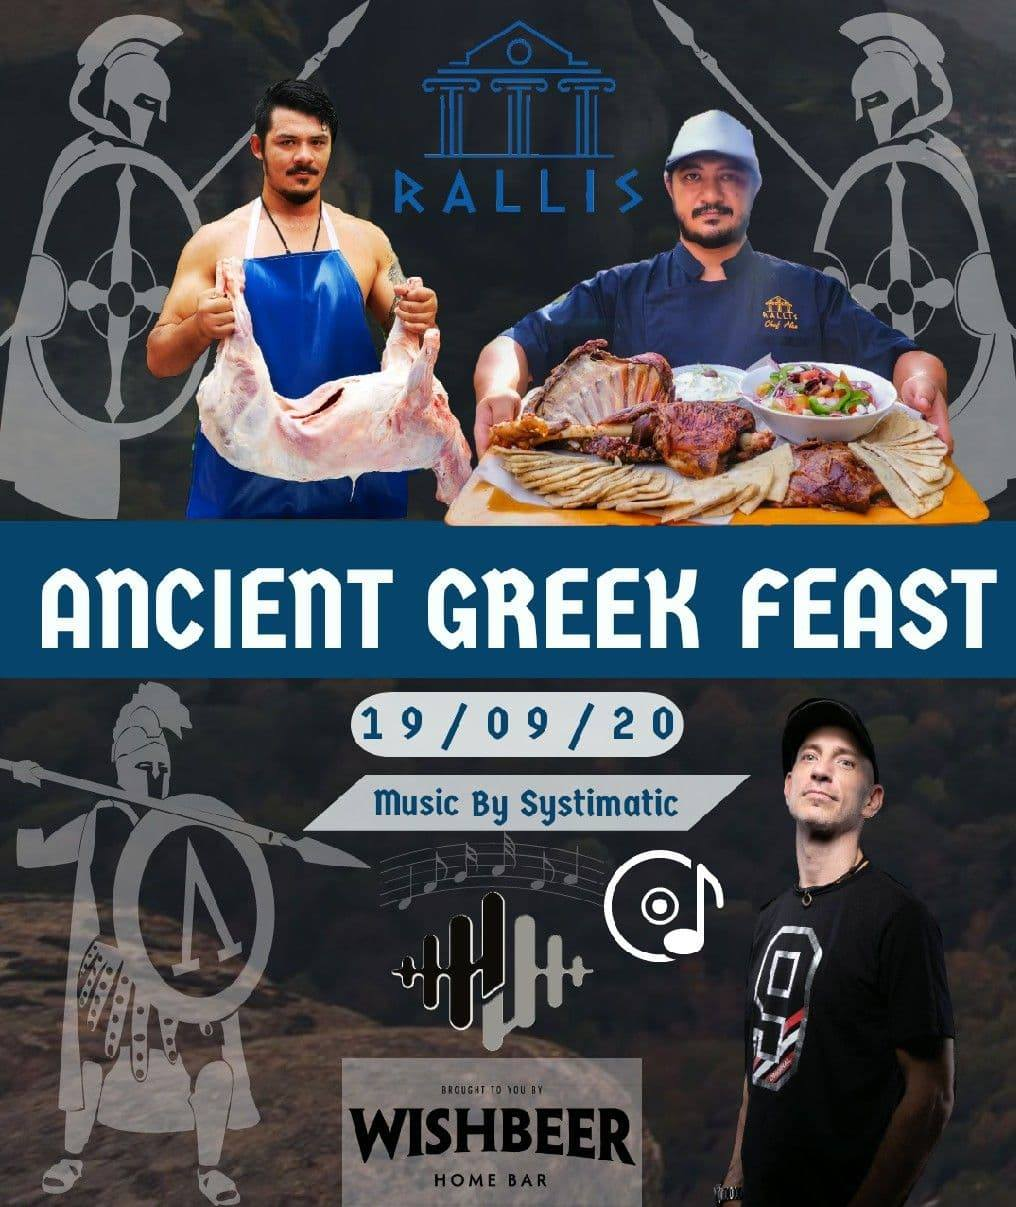 Ancient Greek Feast Event - Saturday 19th Sept.